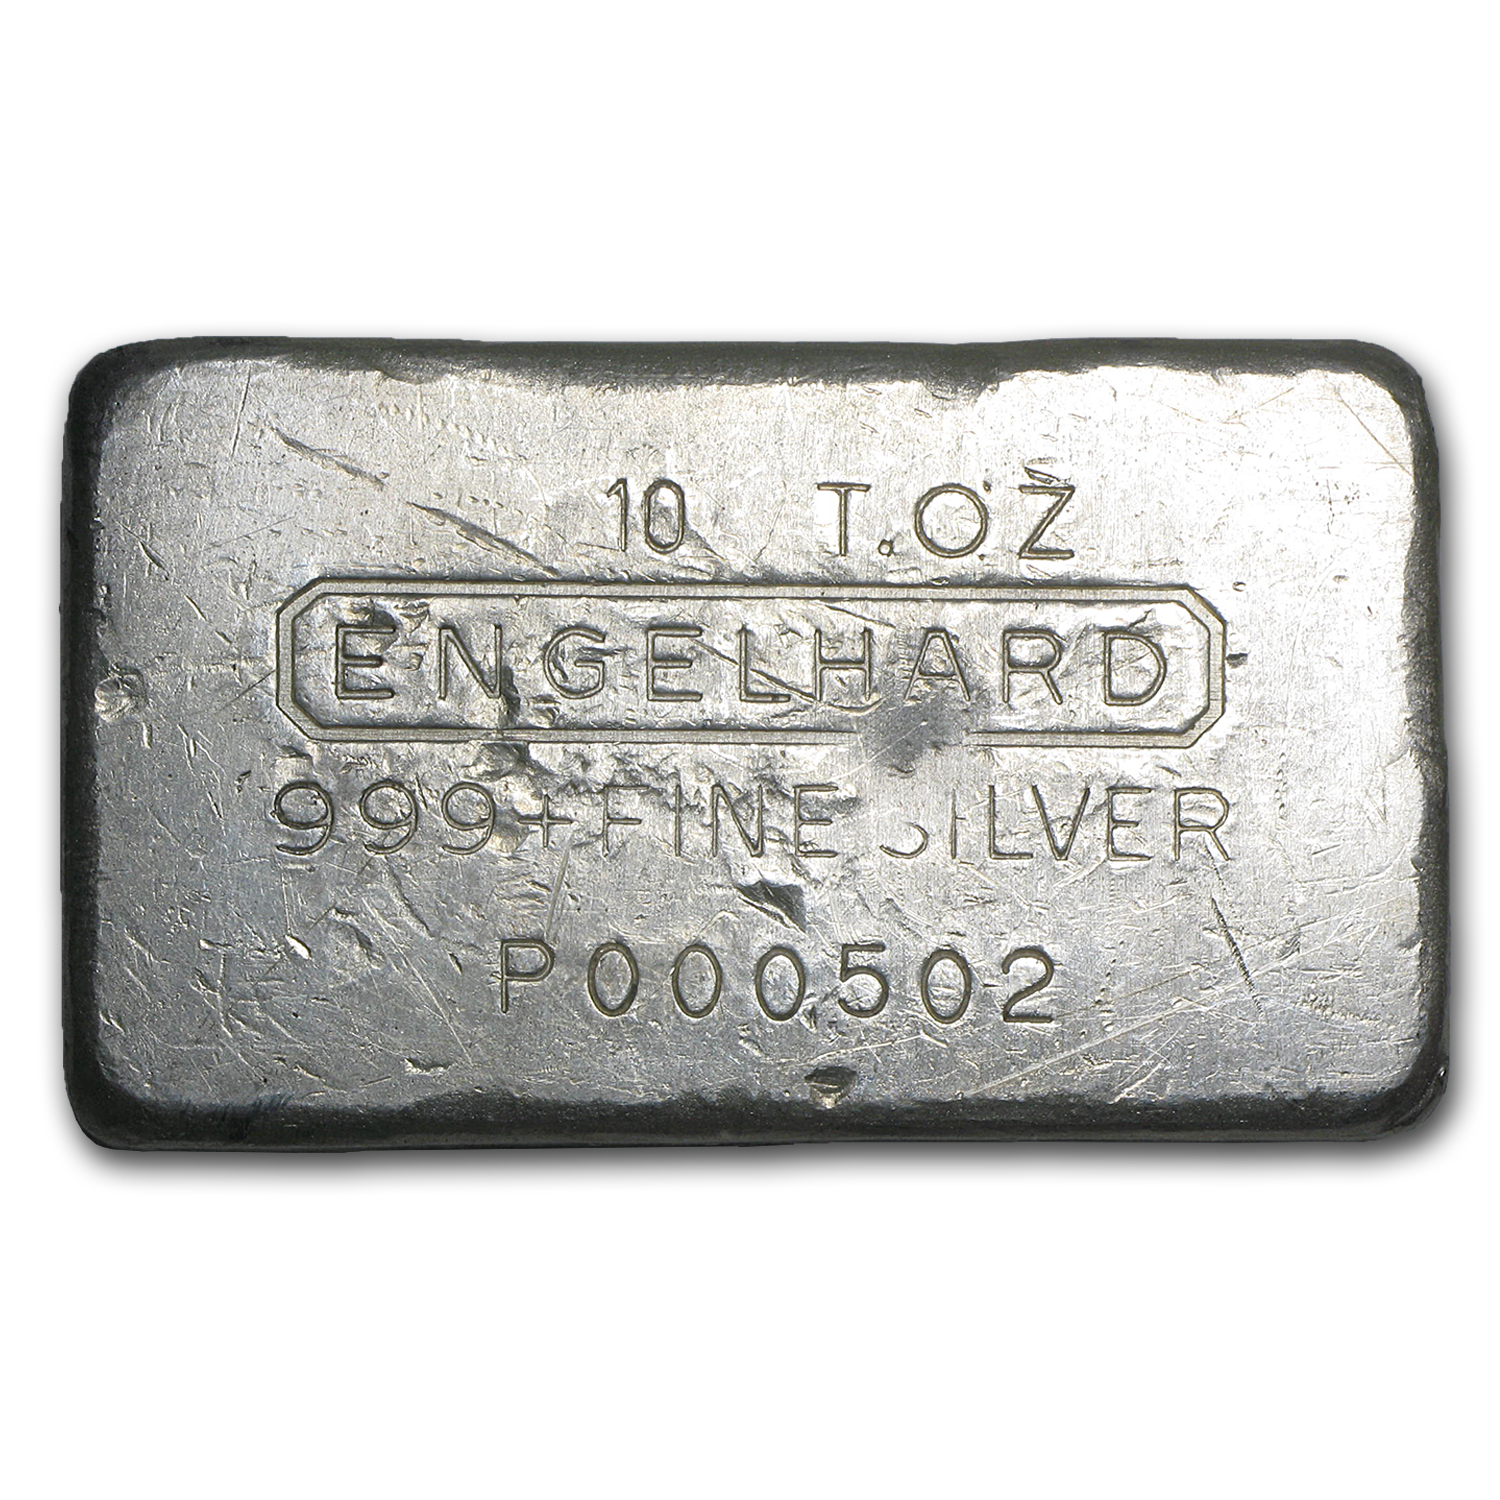 10 oz Silver Bar - Engelhard (Wide/Poured/Low Serial #502)